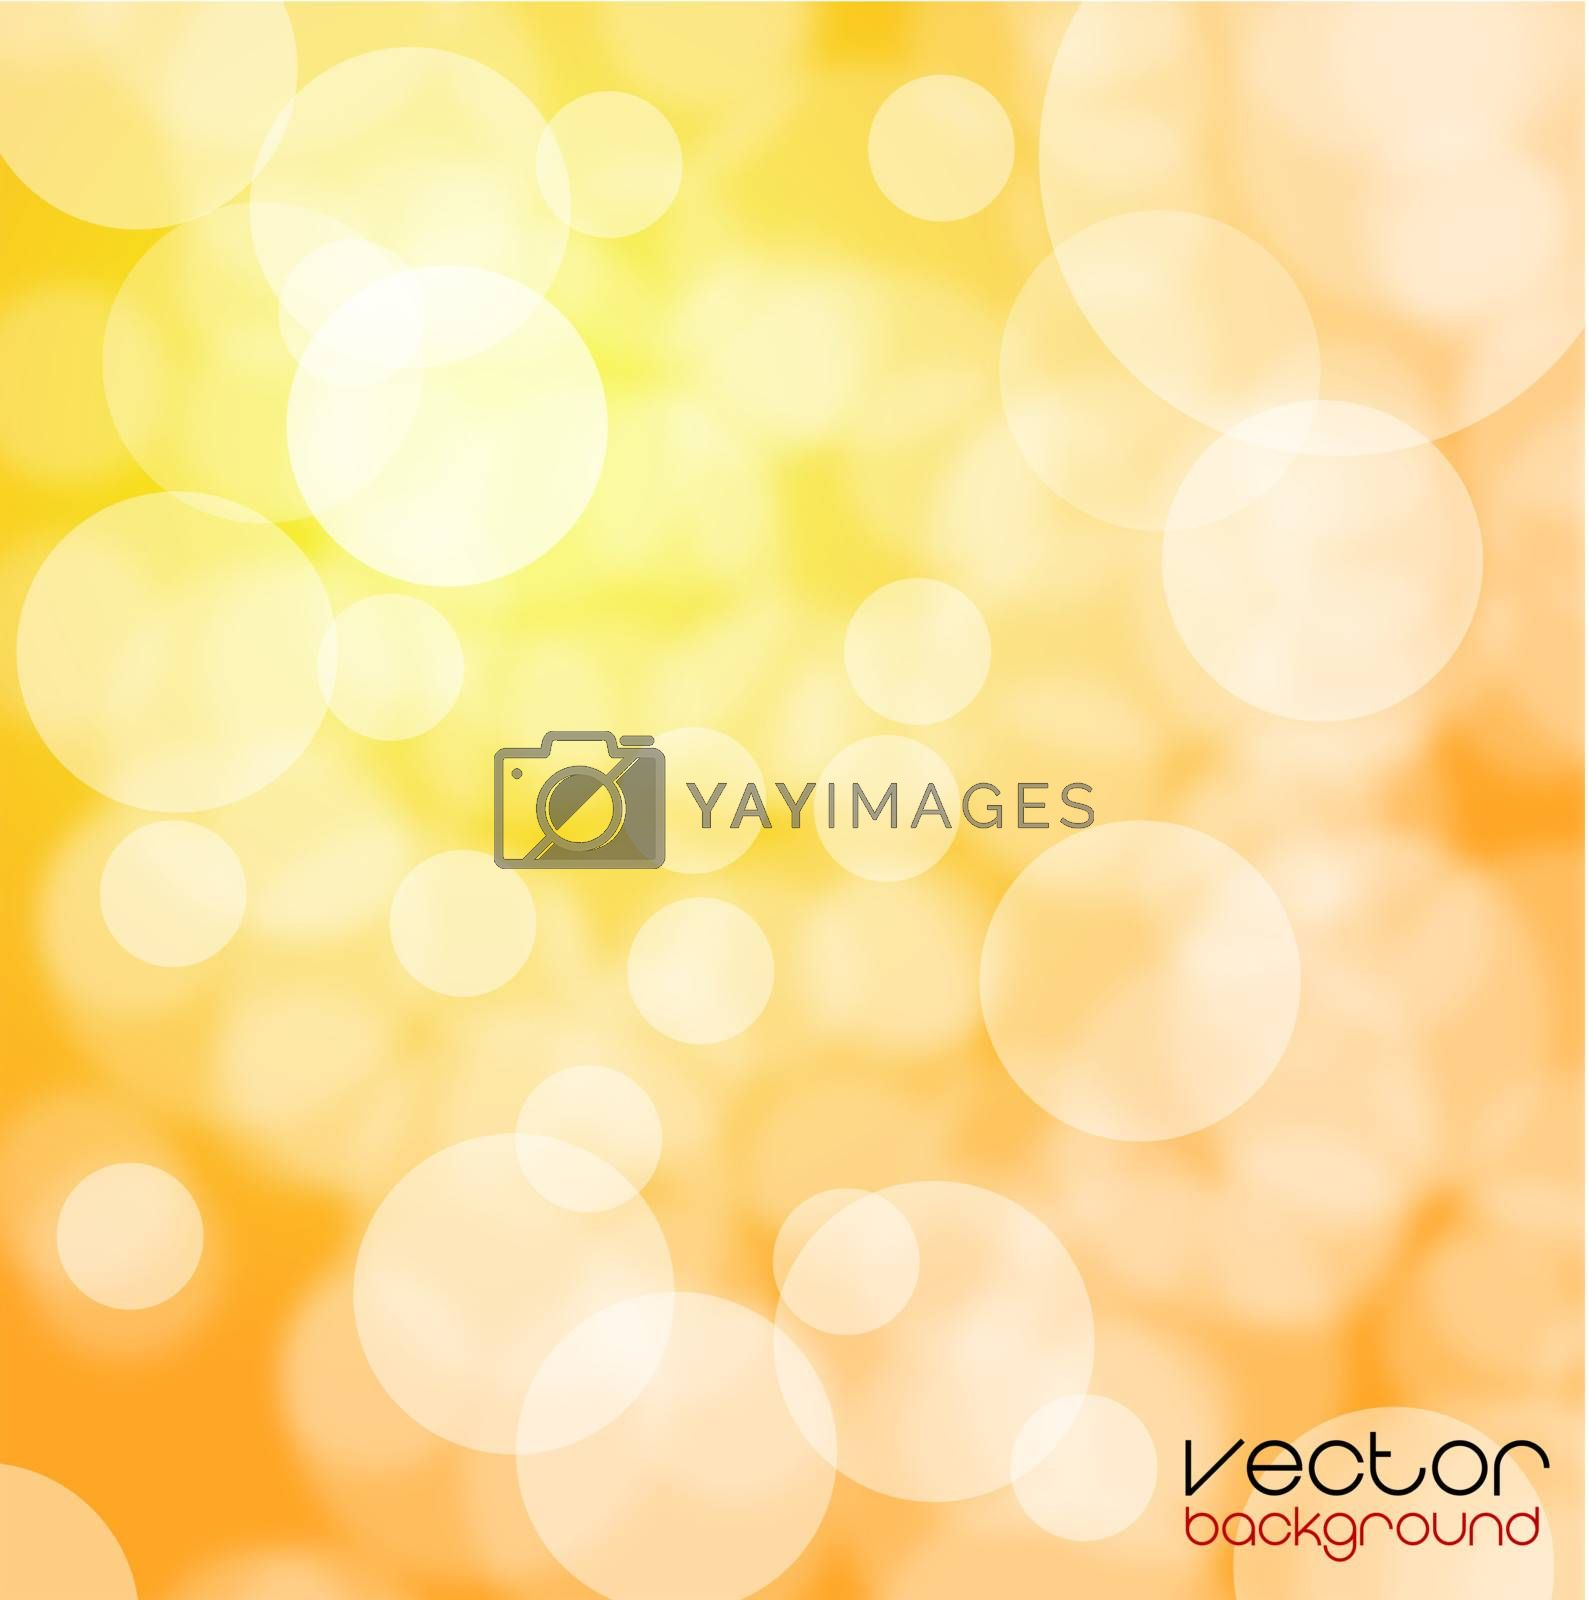 Orange and yellow background vector illustration